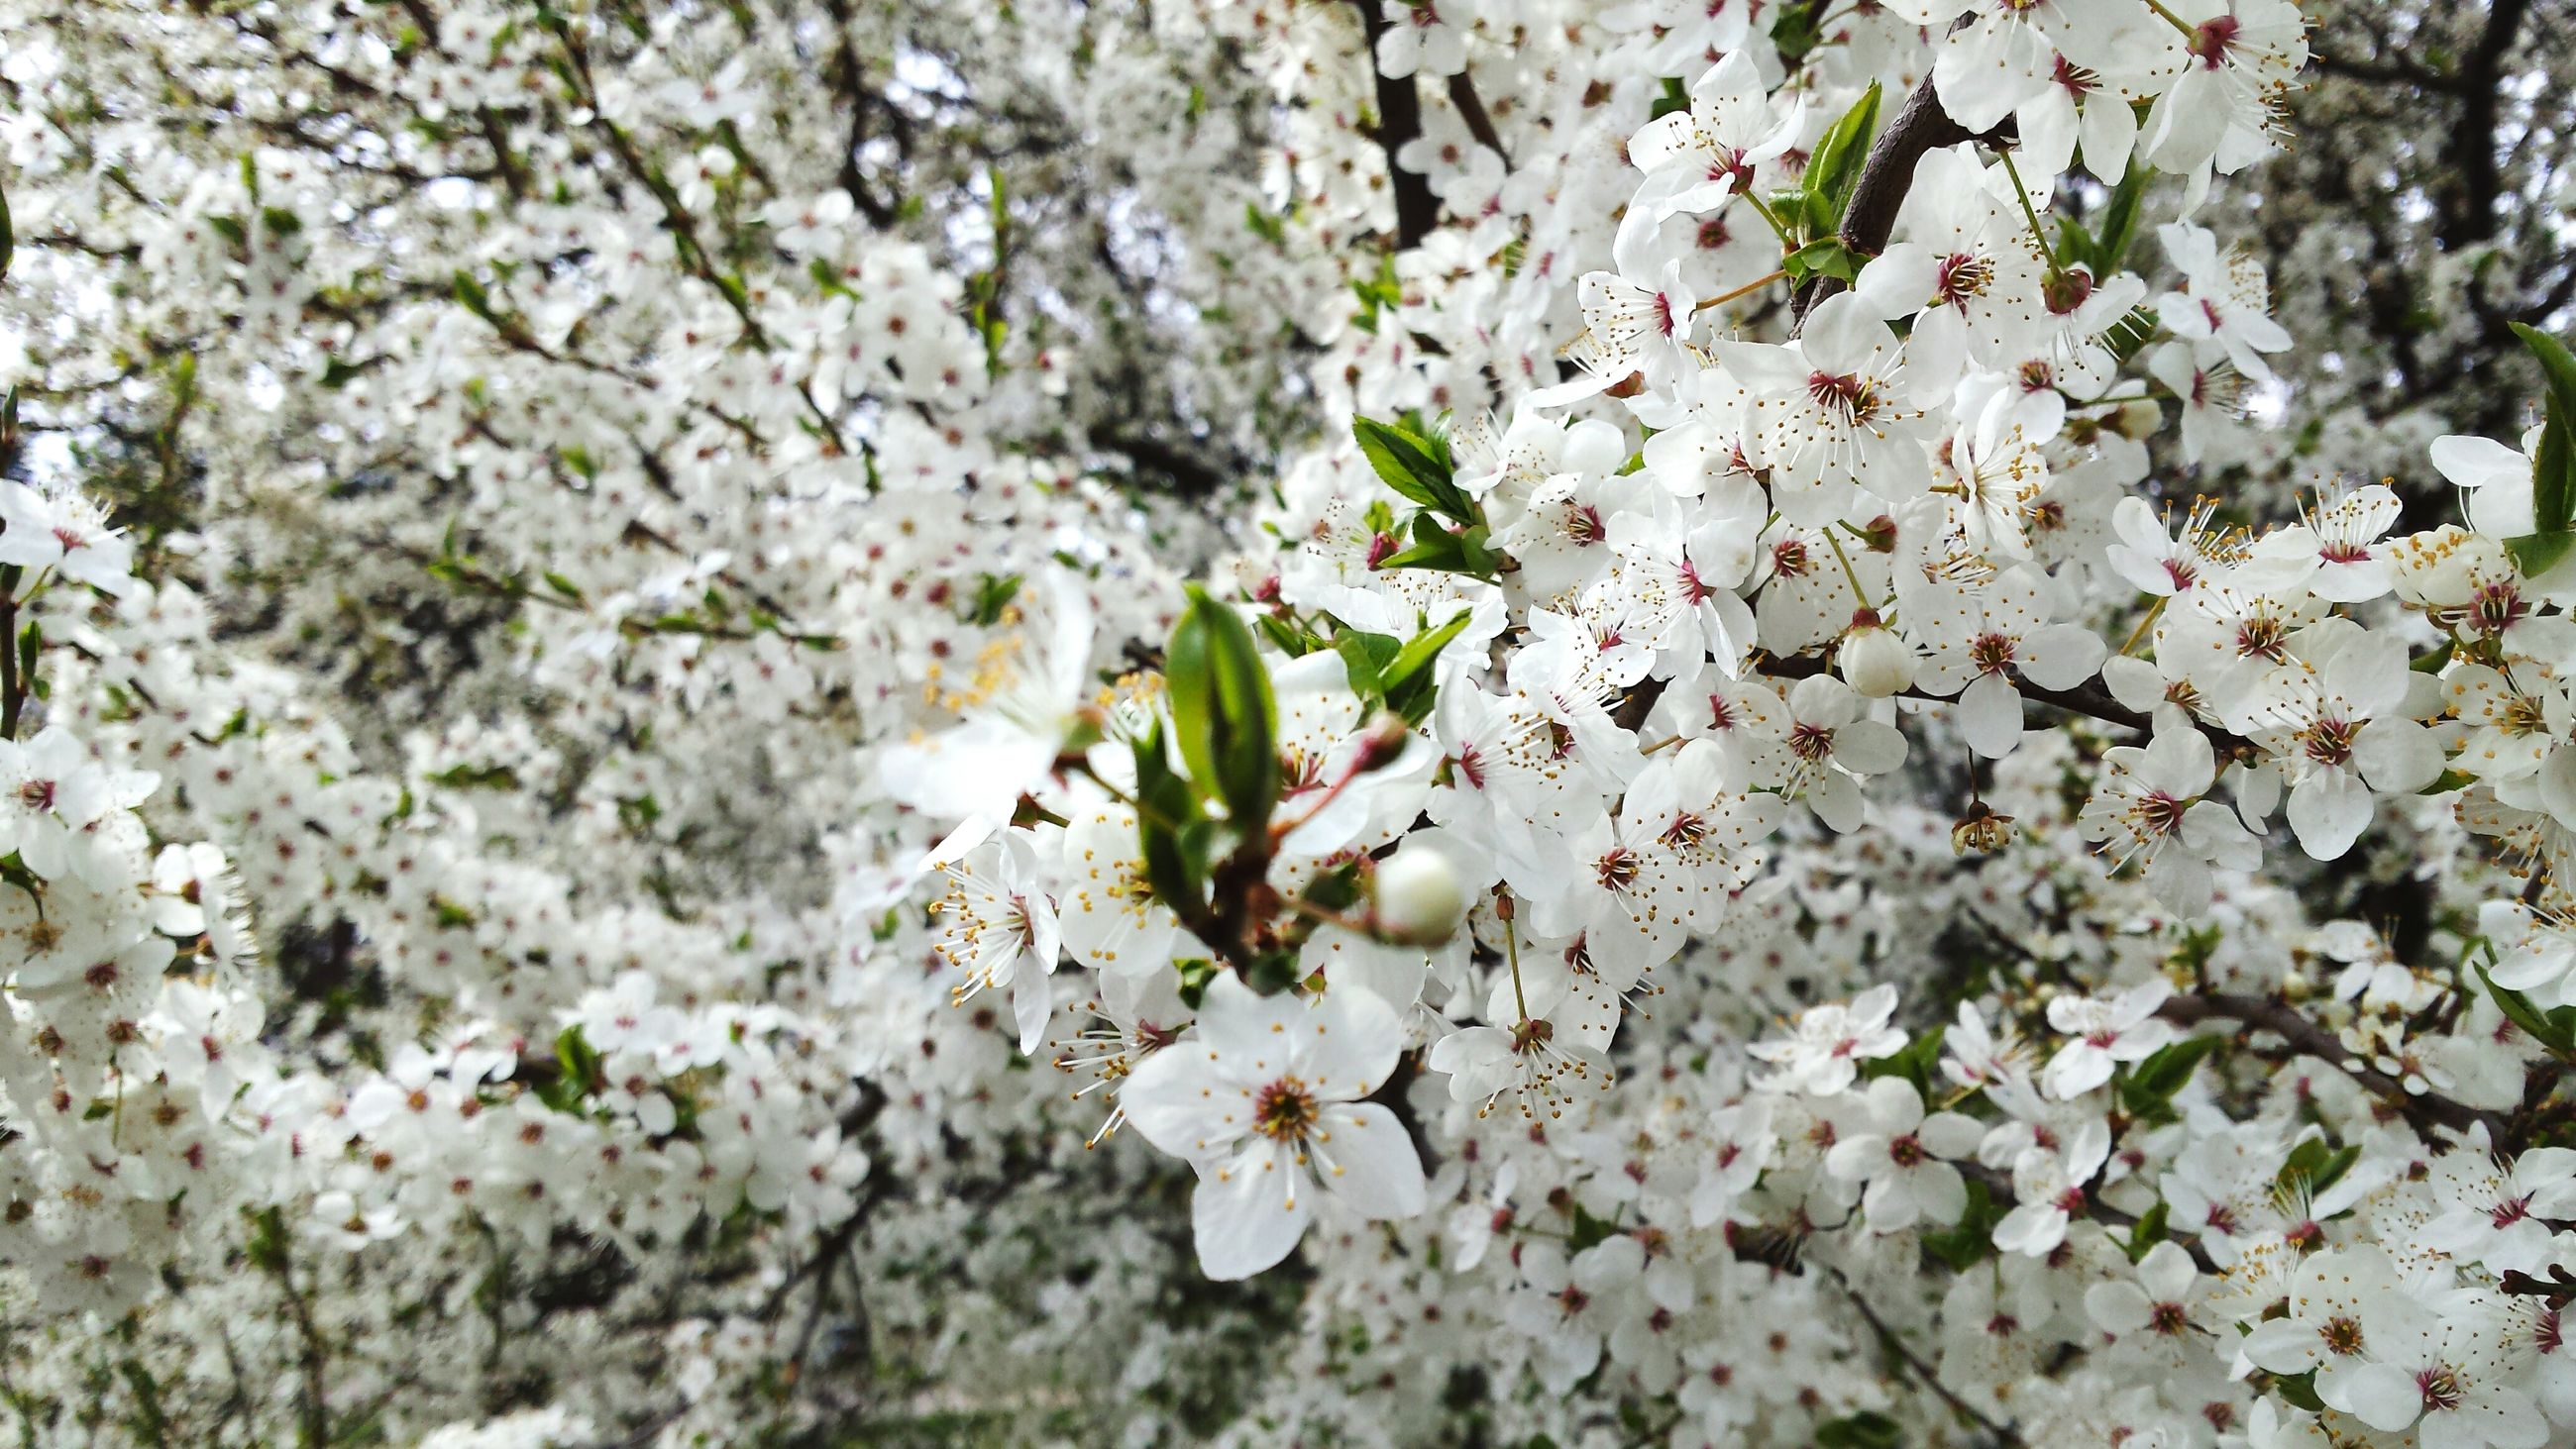 flower, growth, freshness, white color, fragility, beauty in nature, nature, petal, tree, branch, blossom, blooming, plant, in bloom, close-up, focus on foreground, cherry blossom, springtime, botany, white